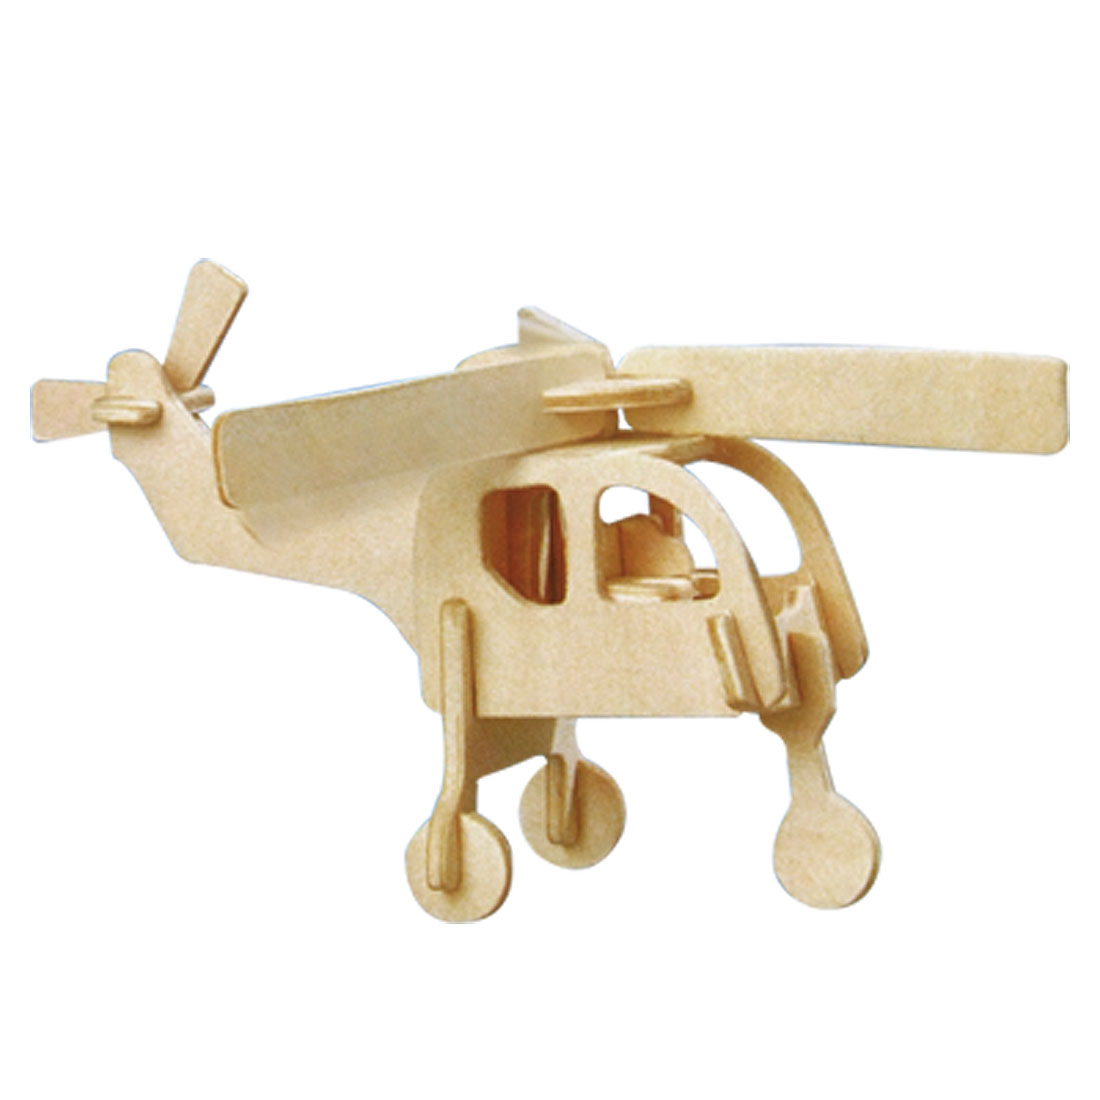 Helicopter Model Puzzle Craft Wooden Assemble Construction Kit Toy